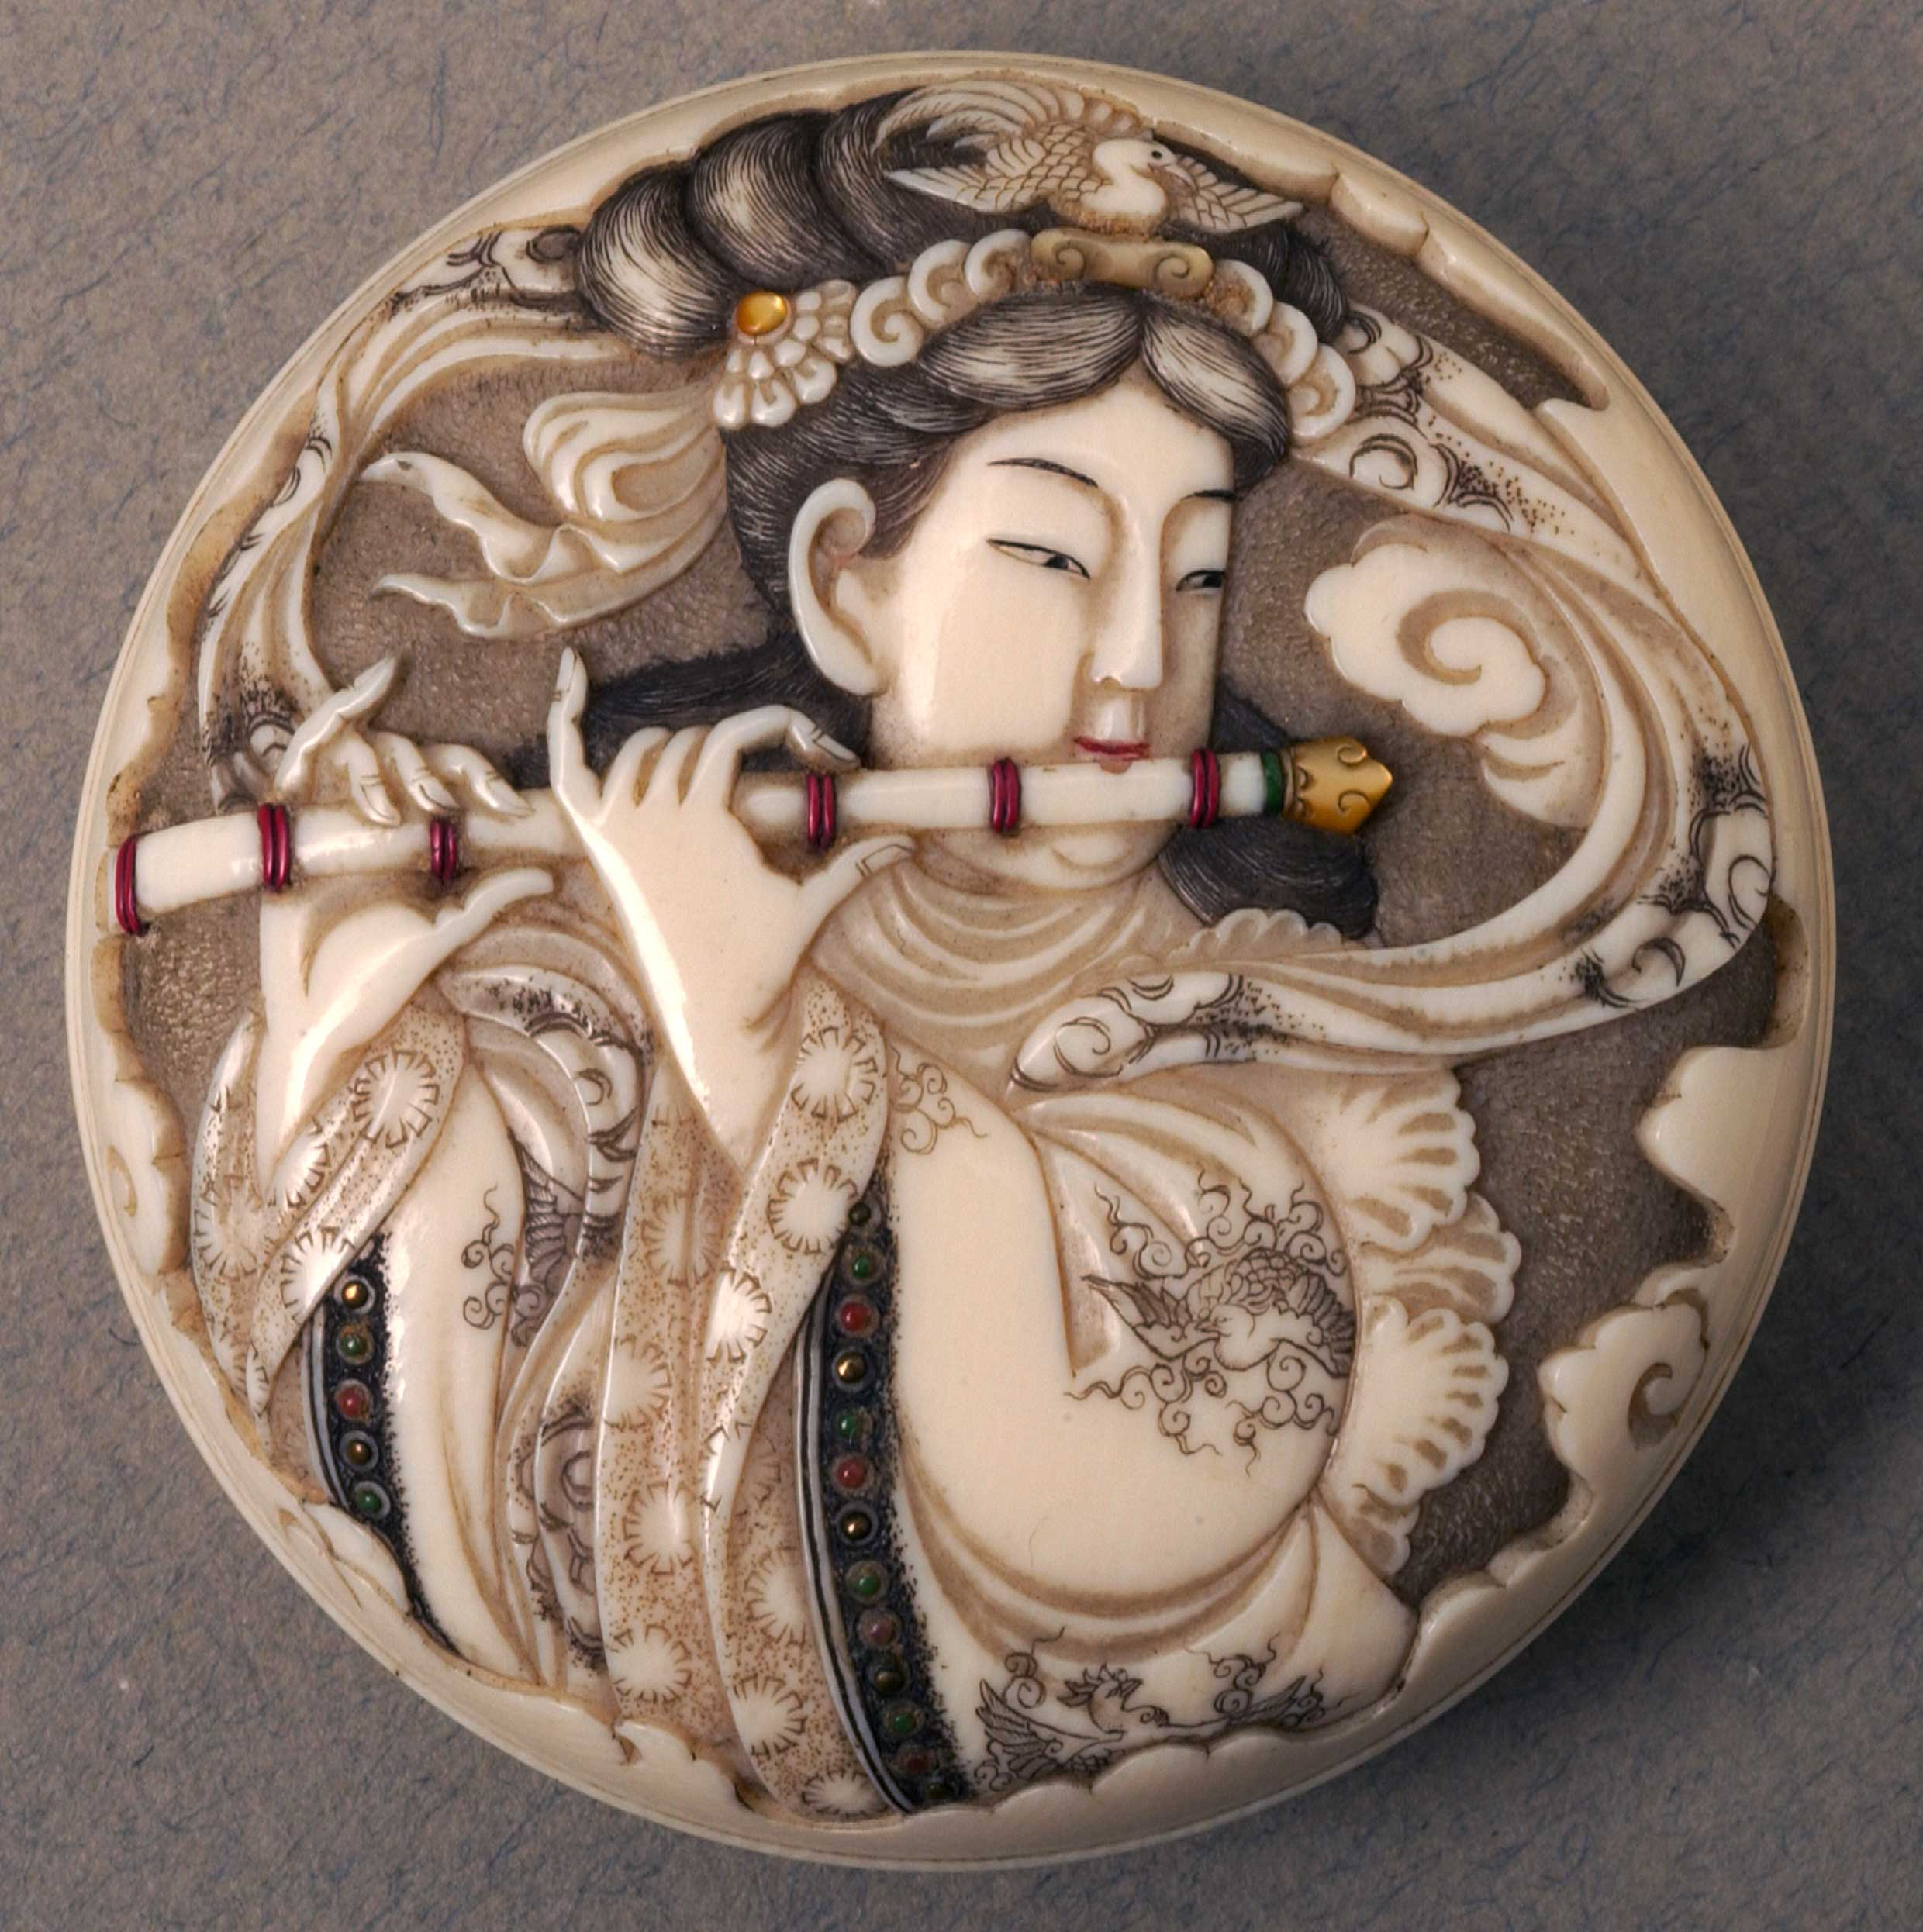 Netsuke depicting a woman playing a flute